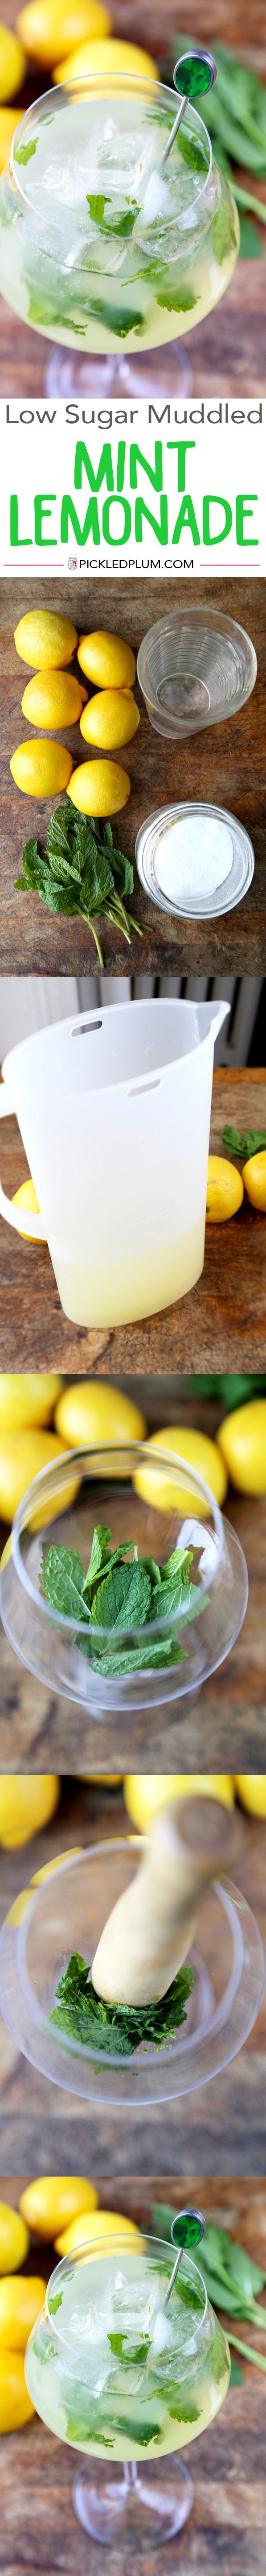 Drinks: Low Sugar Muddled Mint Lemonade Recipe - Easy, Vegan, Gluten-Free and Tart! #healthy